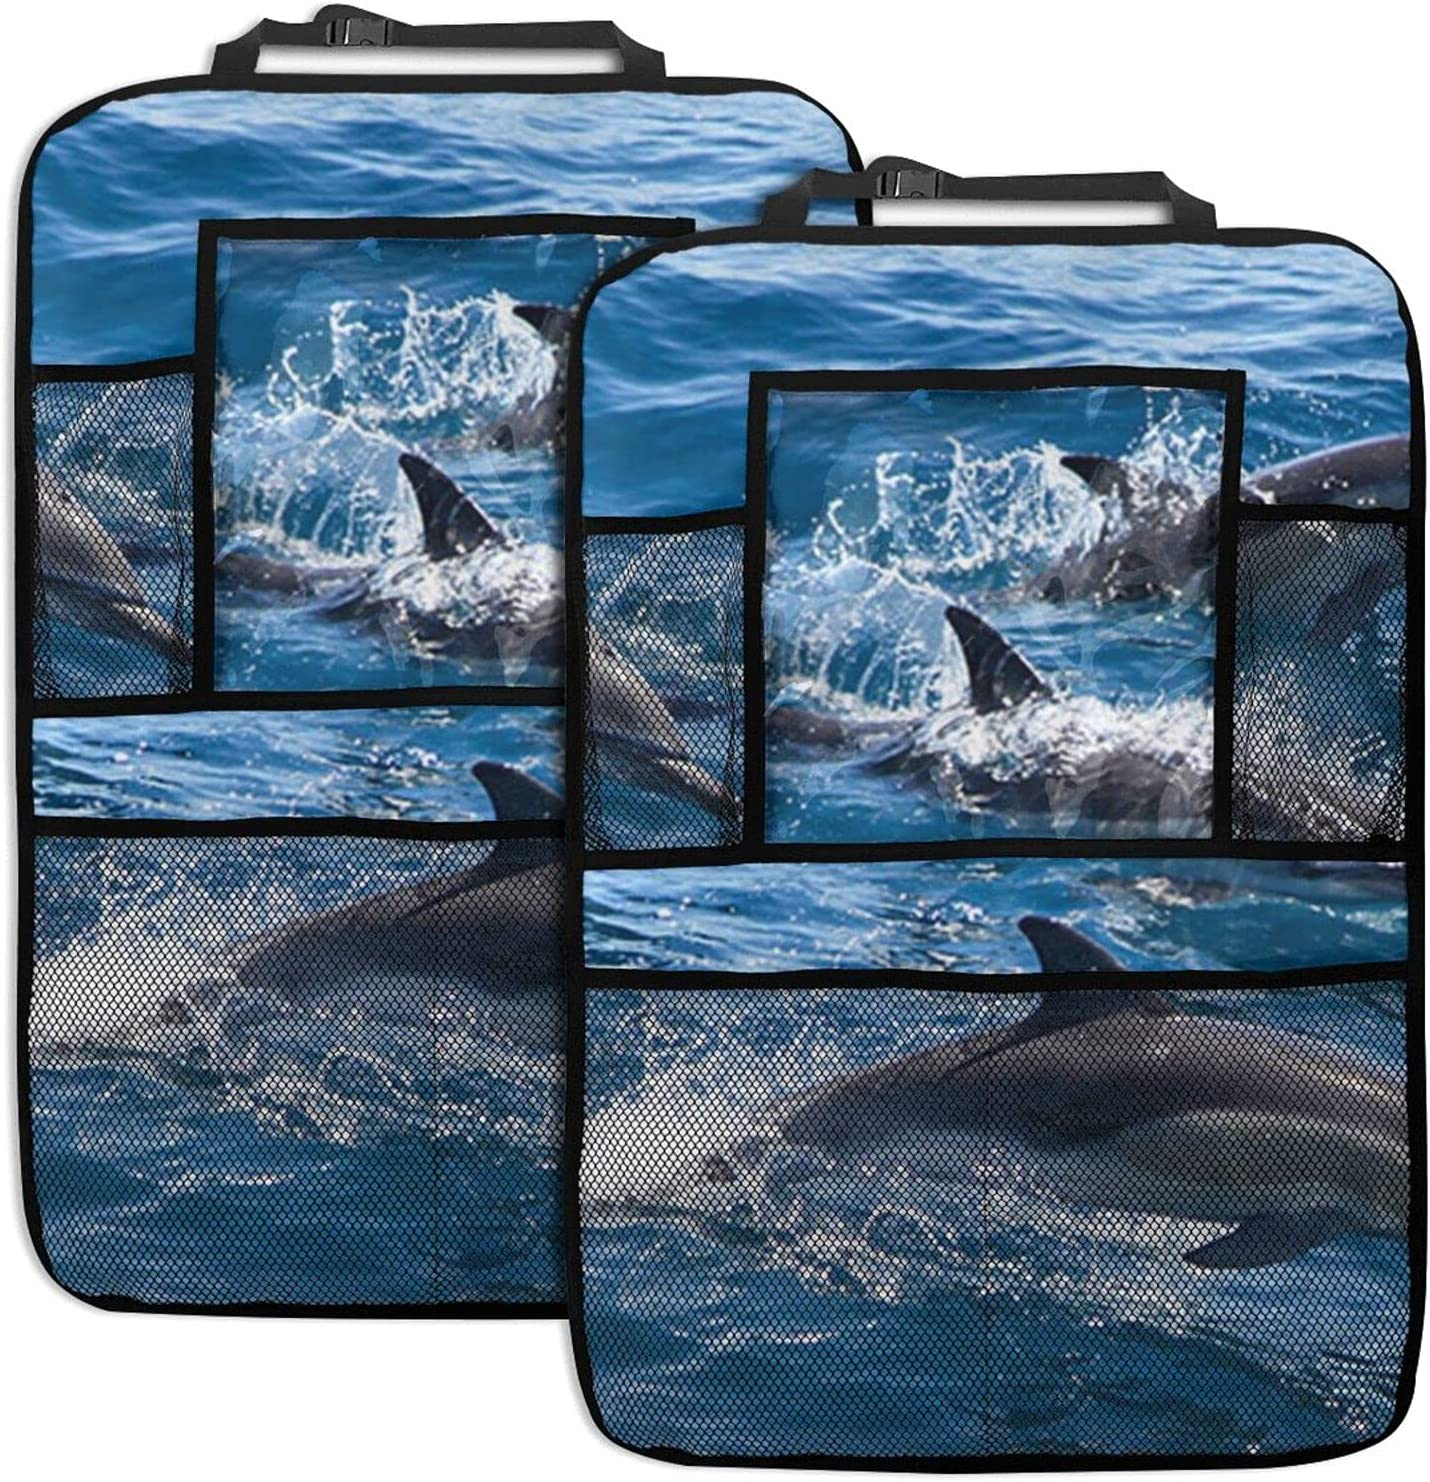 Kounnena Dolphins in The Sea Seats Organizer Car Backseat Courier shipping free shipping Ba Store